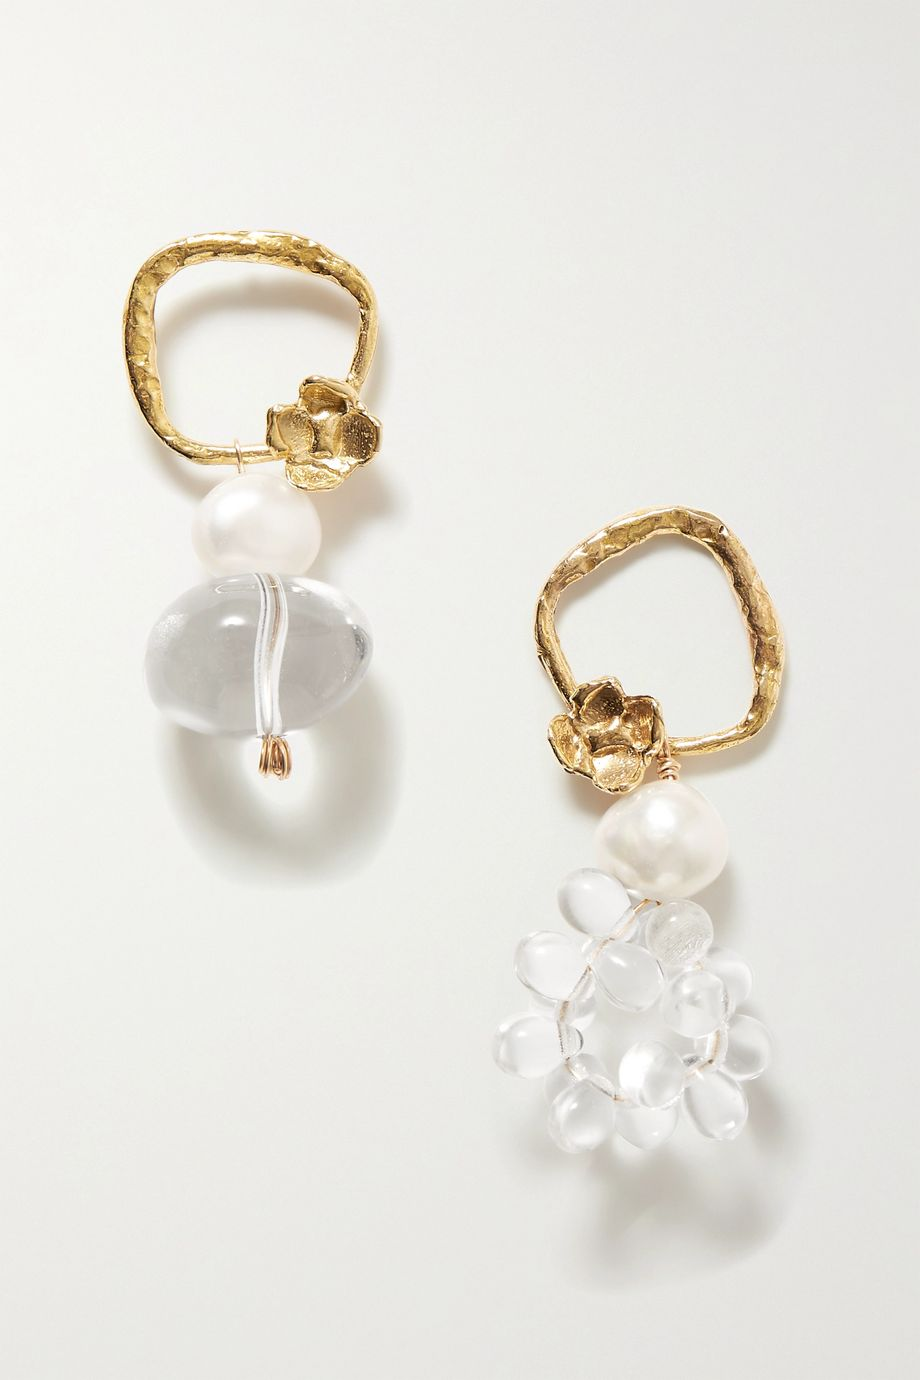 Anita Berisha Water Drops gold-tone, quartz and pearl earrings